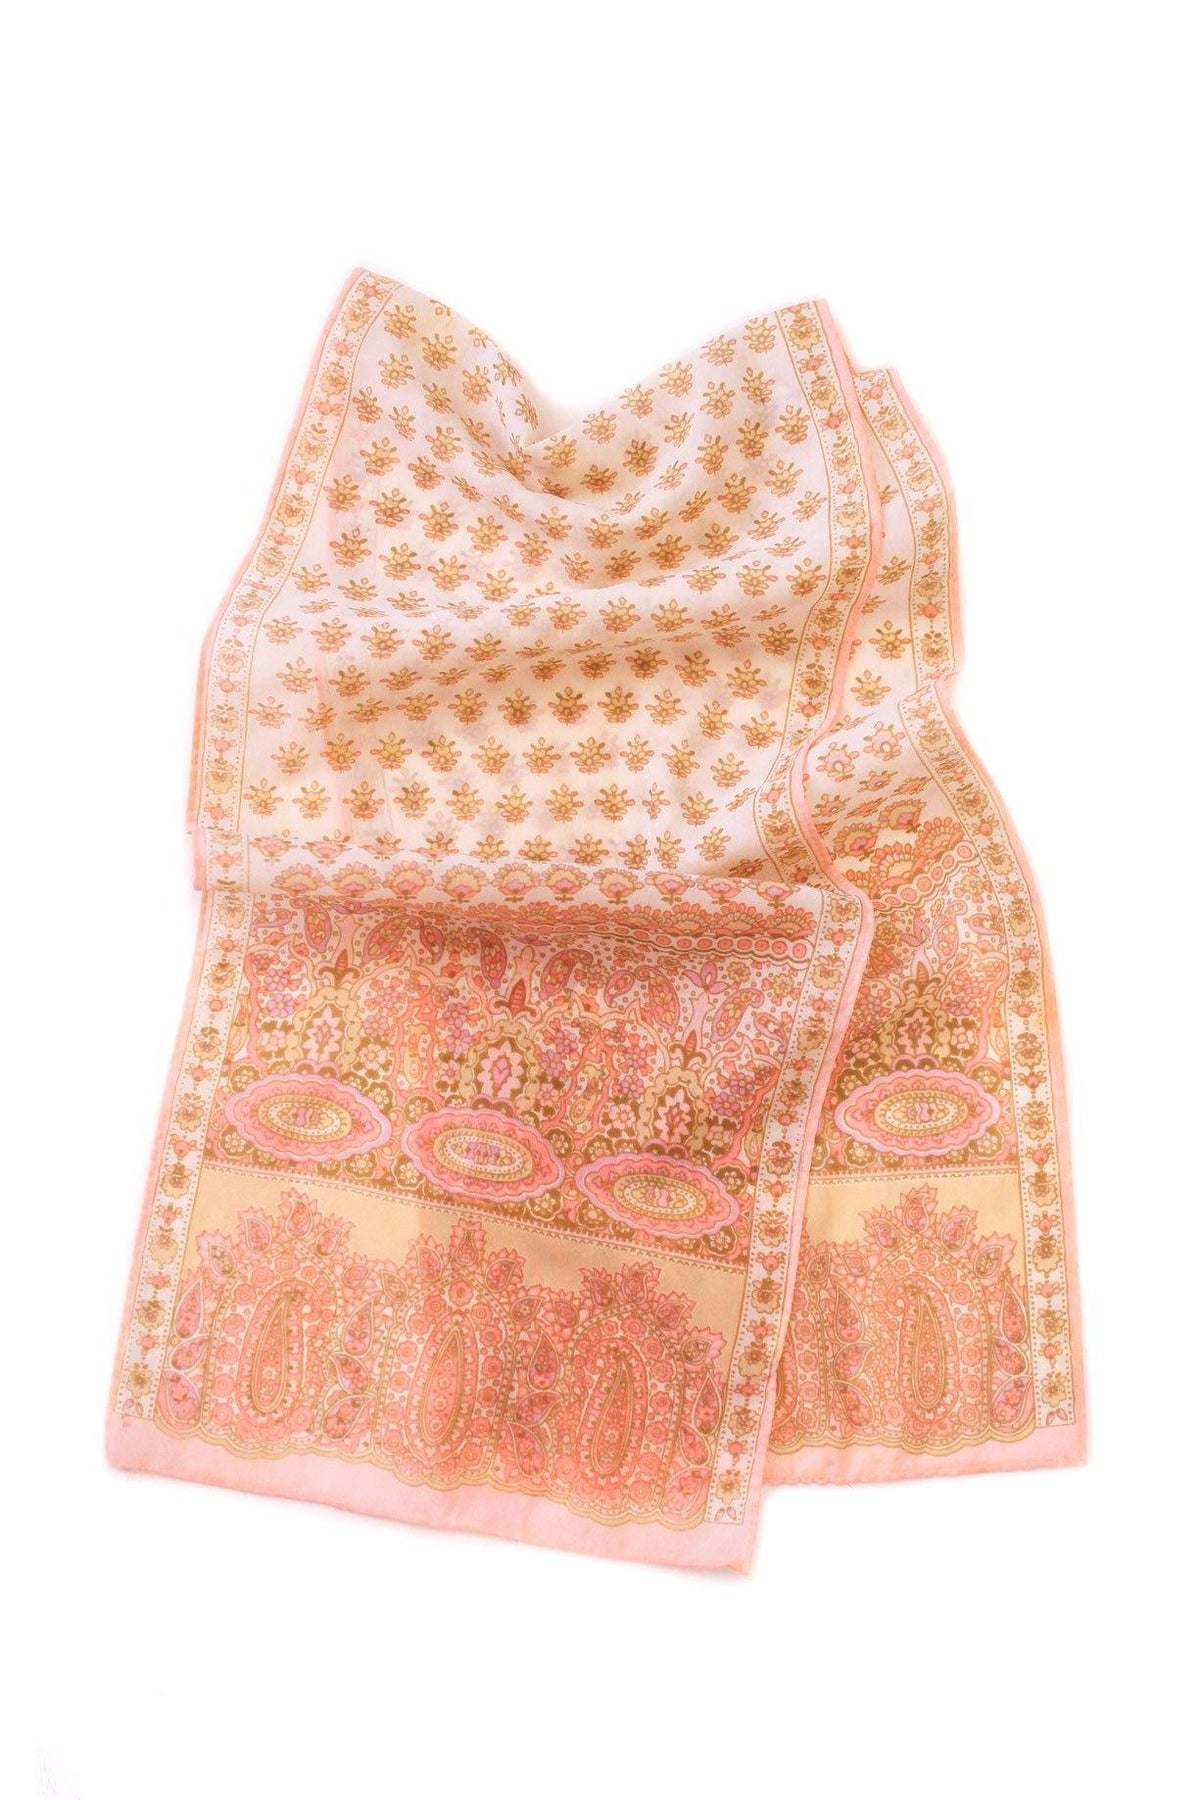 Vintage pink paisley rectangle scarf from Sweet & Spark